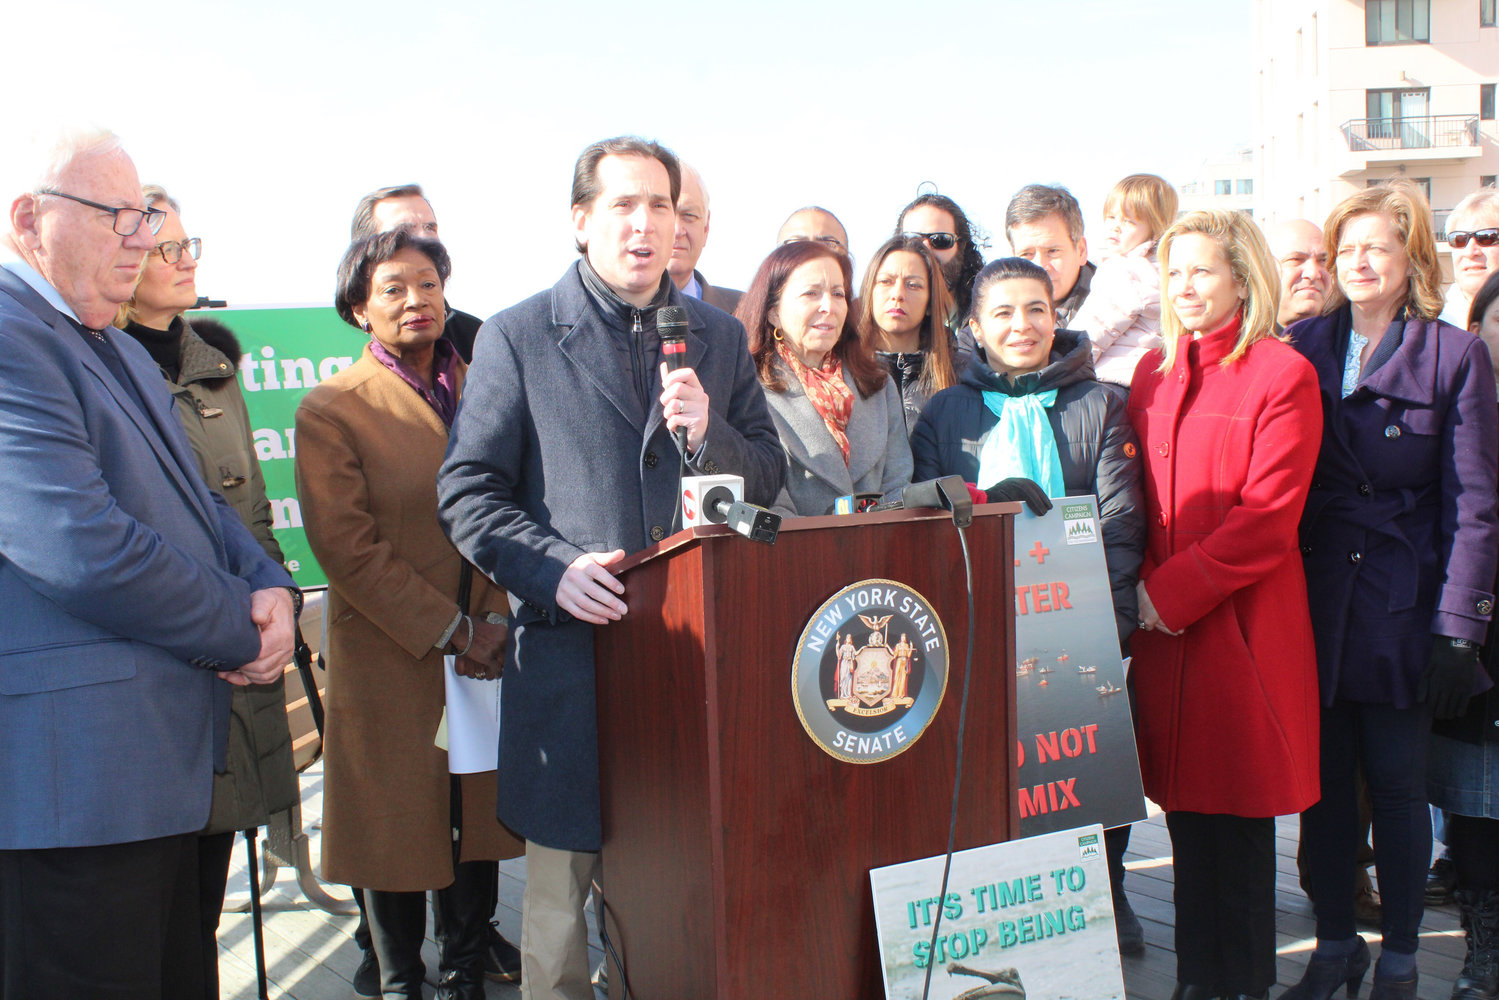 State Sen. Todd Kaminsky held a news conference on Sunday on the boardwalk, where he announced that a bill that he sponsored to ban offshore drilling was expected to pass in the State Legislature.